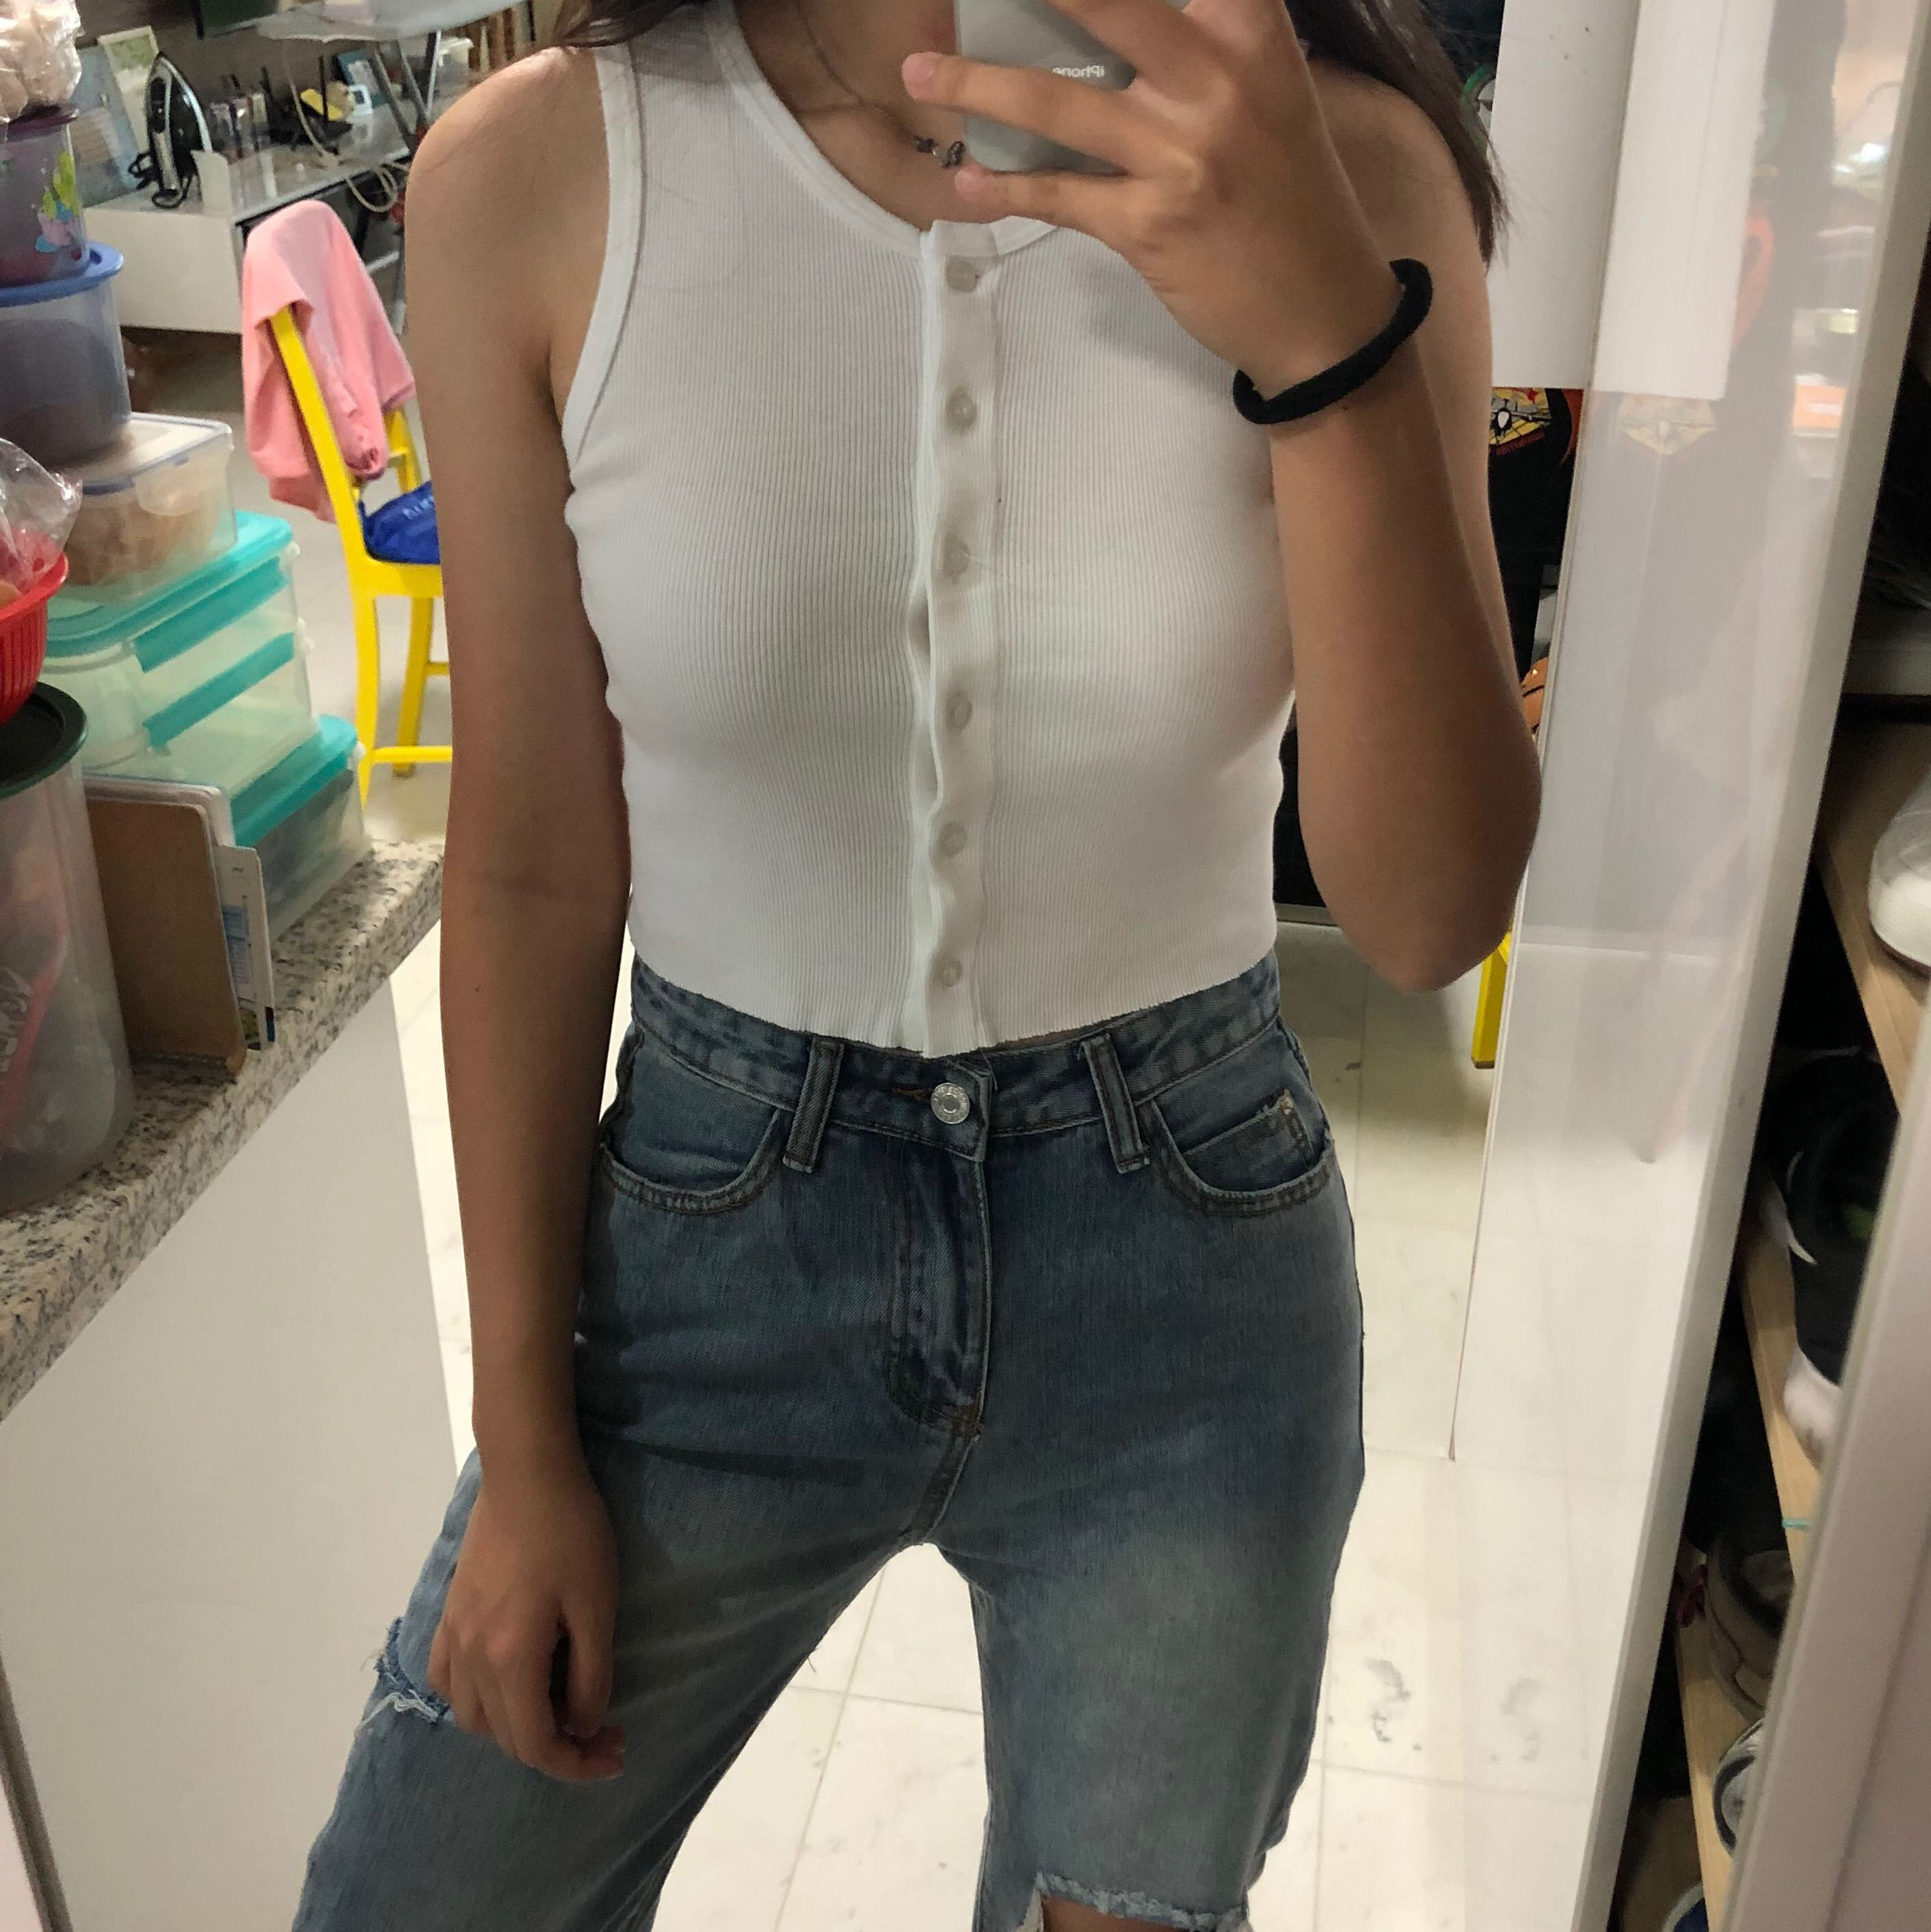 69c0122d bnwt brandy melville ribbed button up tank top, Women's Fashion ...